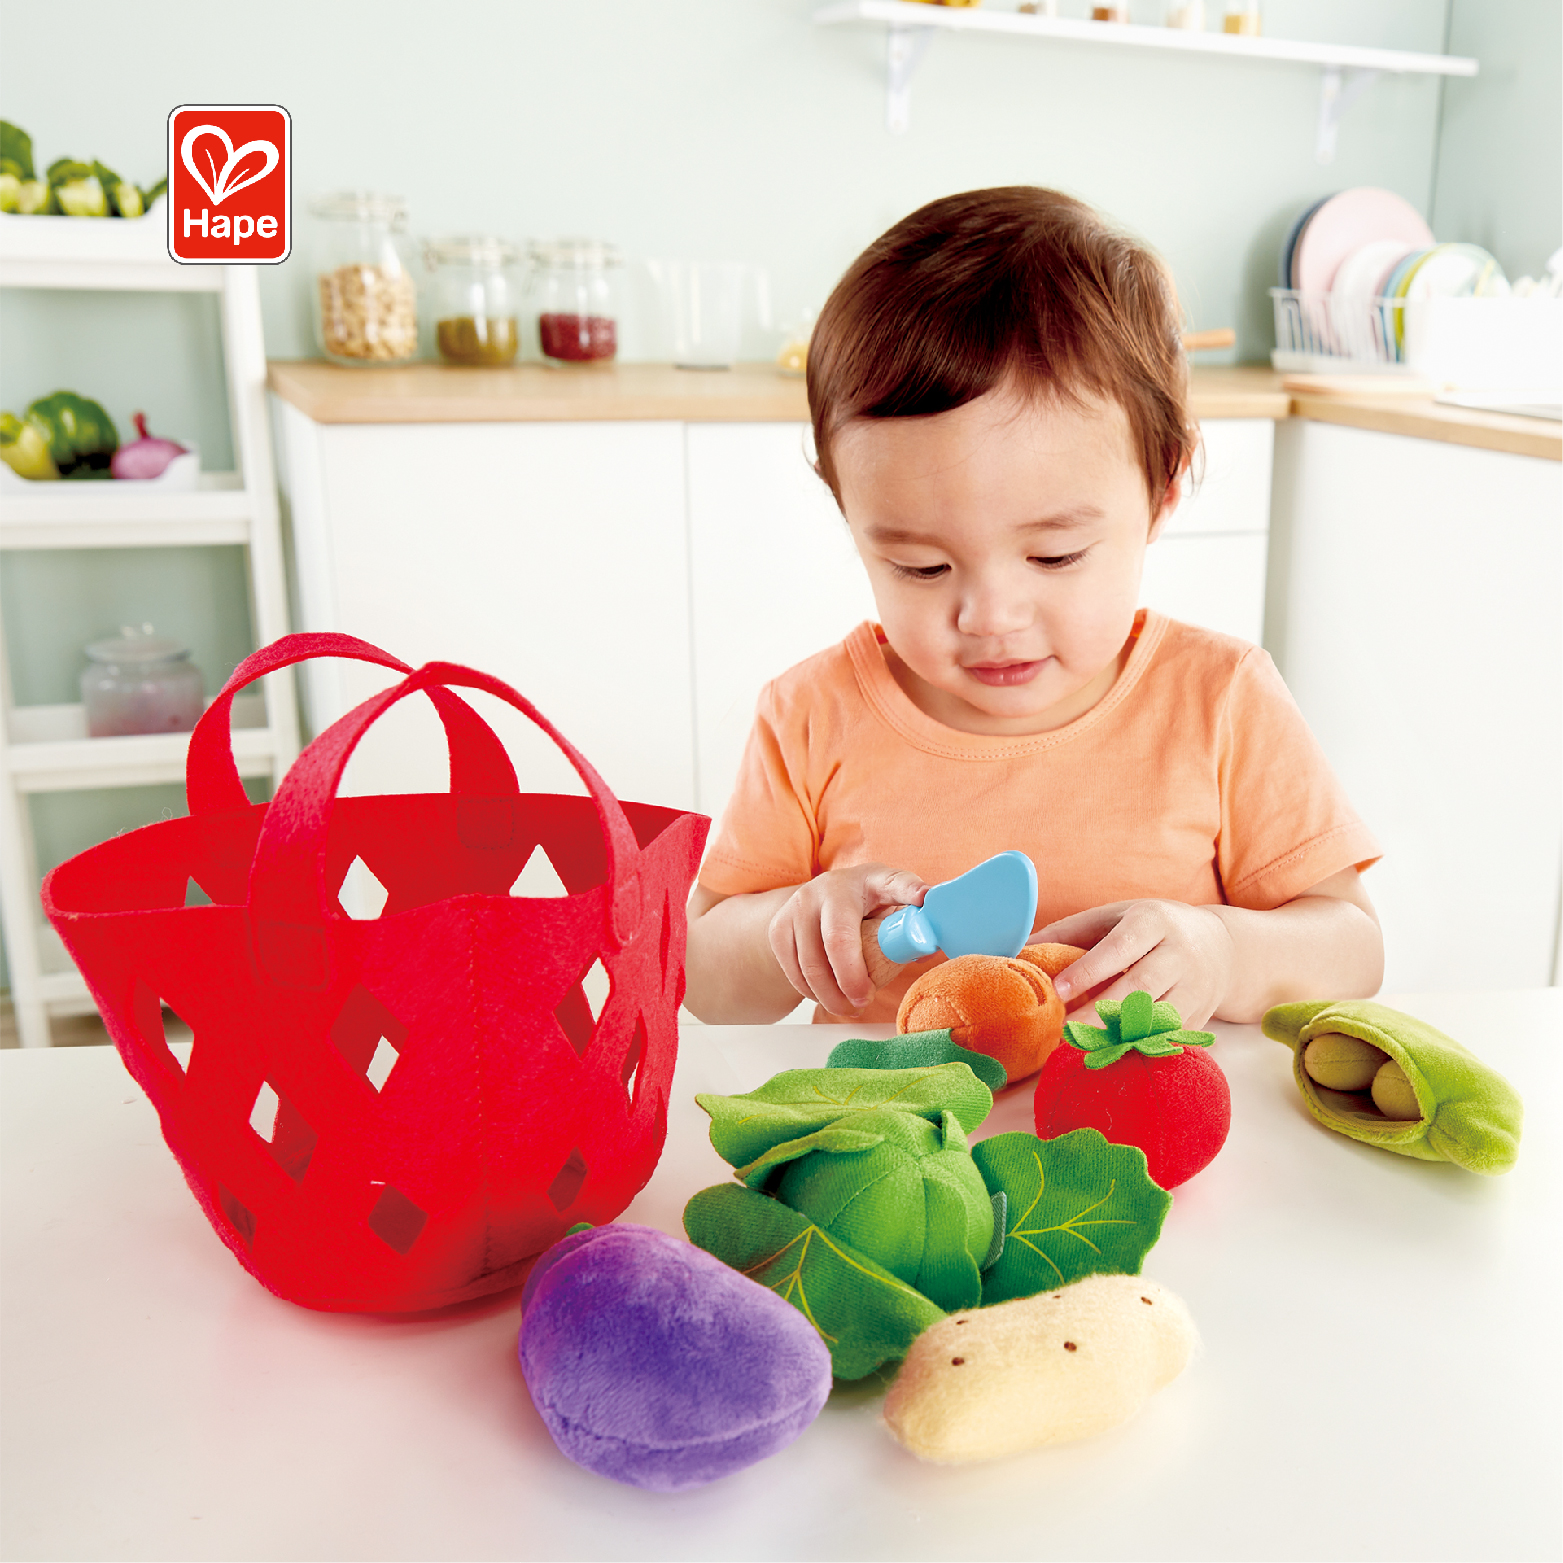 Hape Brand Craft Kitchen Toys Fun Cutting Toddler Vegetable Basket Set for Children Educational Early Age Basic